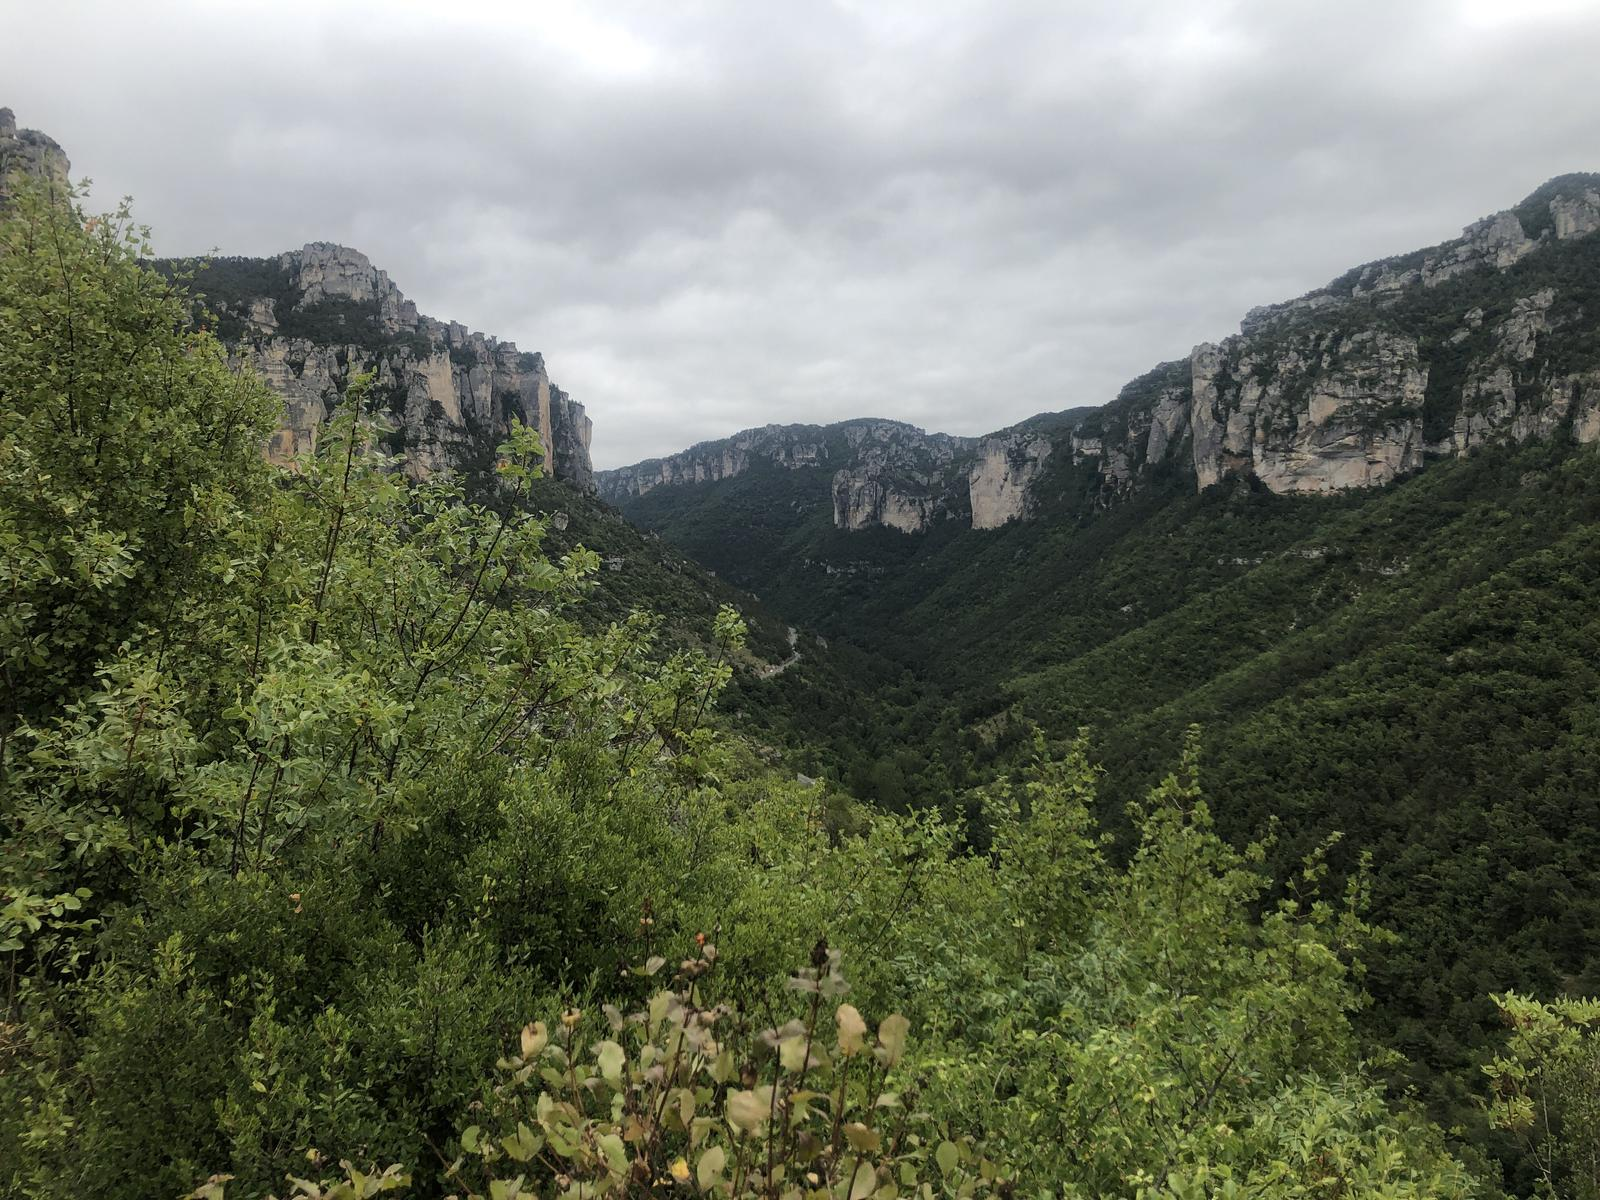 Photo of Rochers du Capluc casagne sentier des corniches Tarm